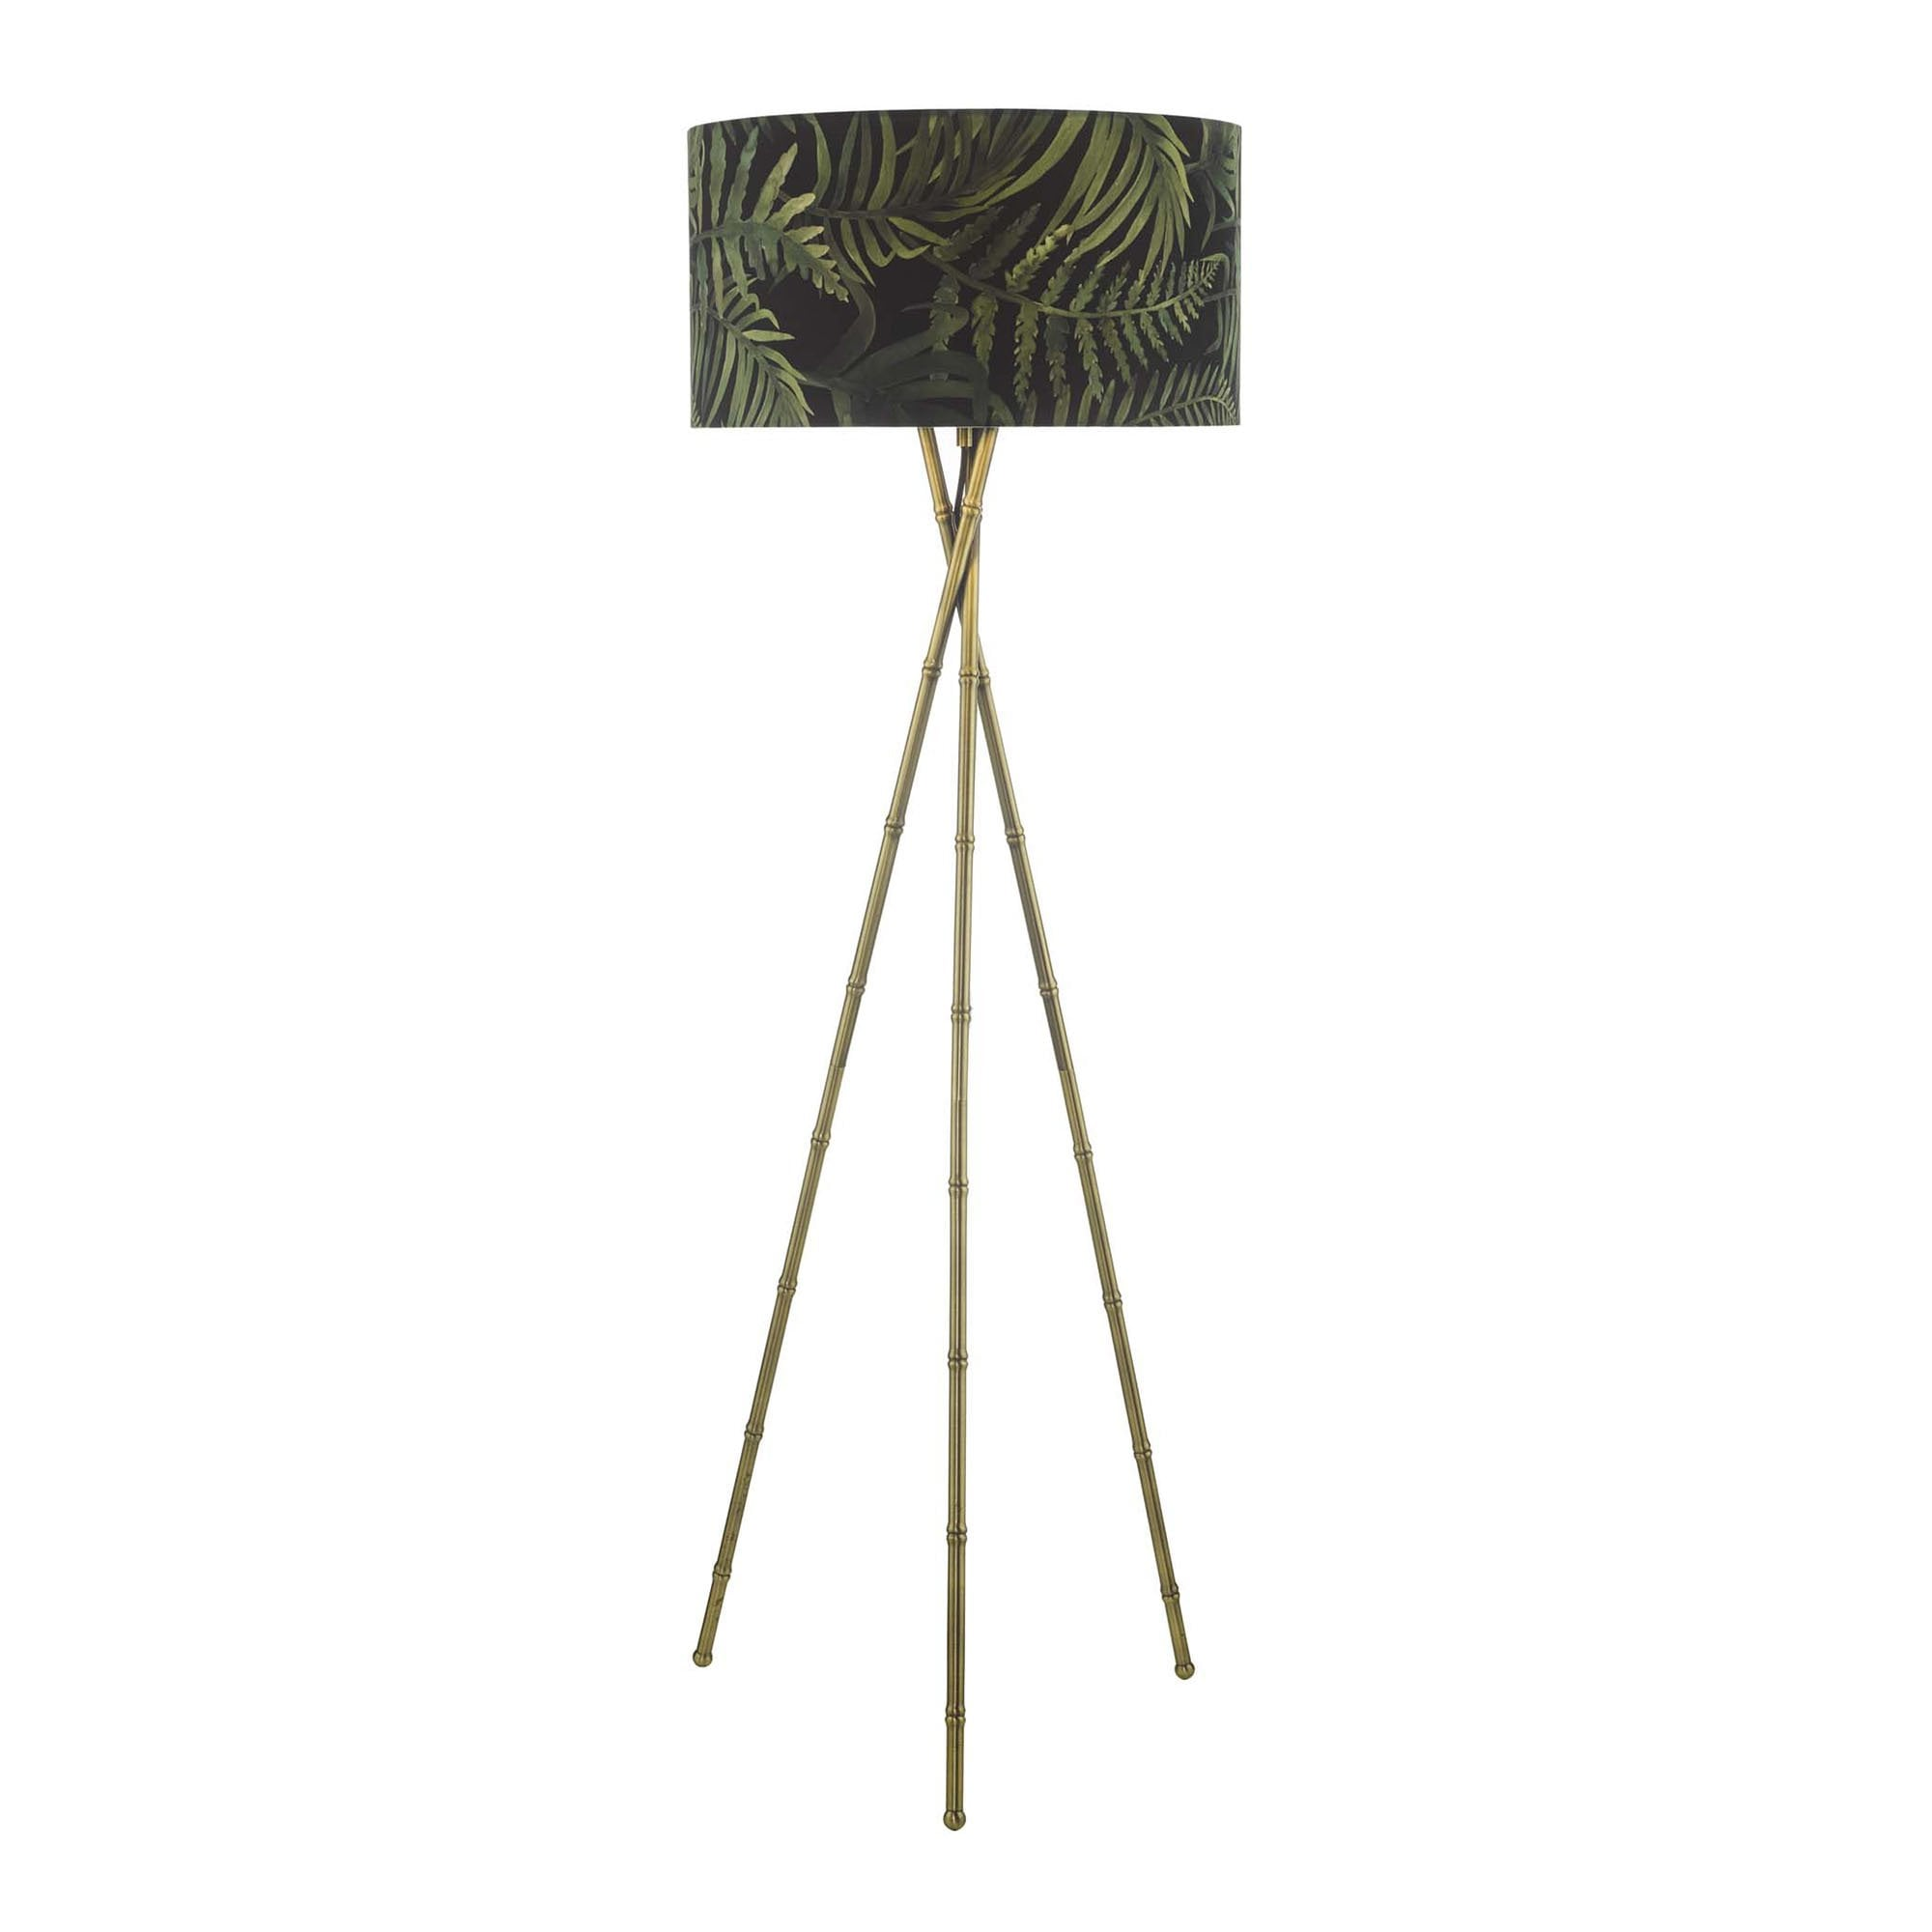 Antique Brass Bamboo Style Tripod Floor Lamp Base